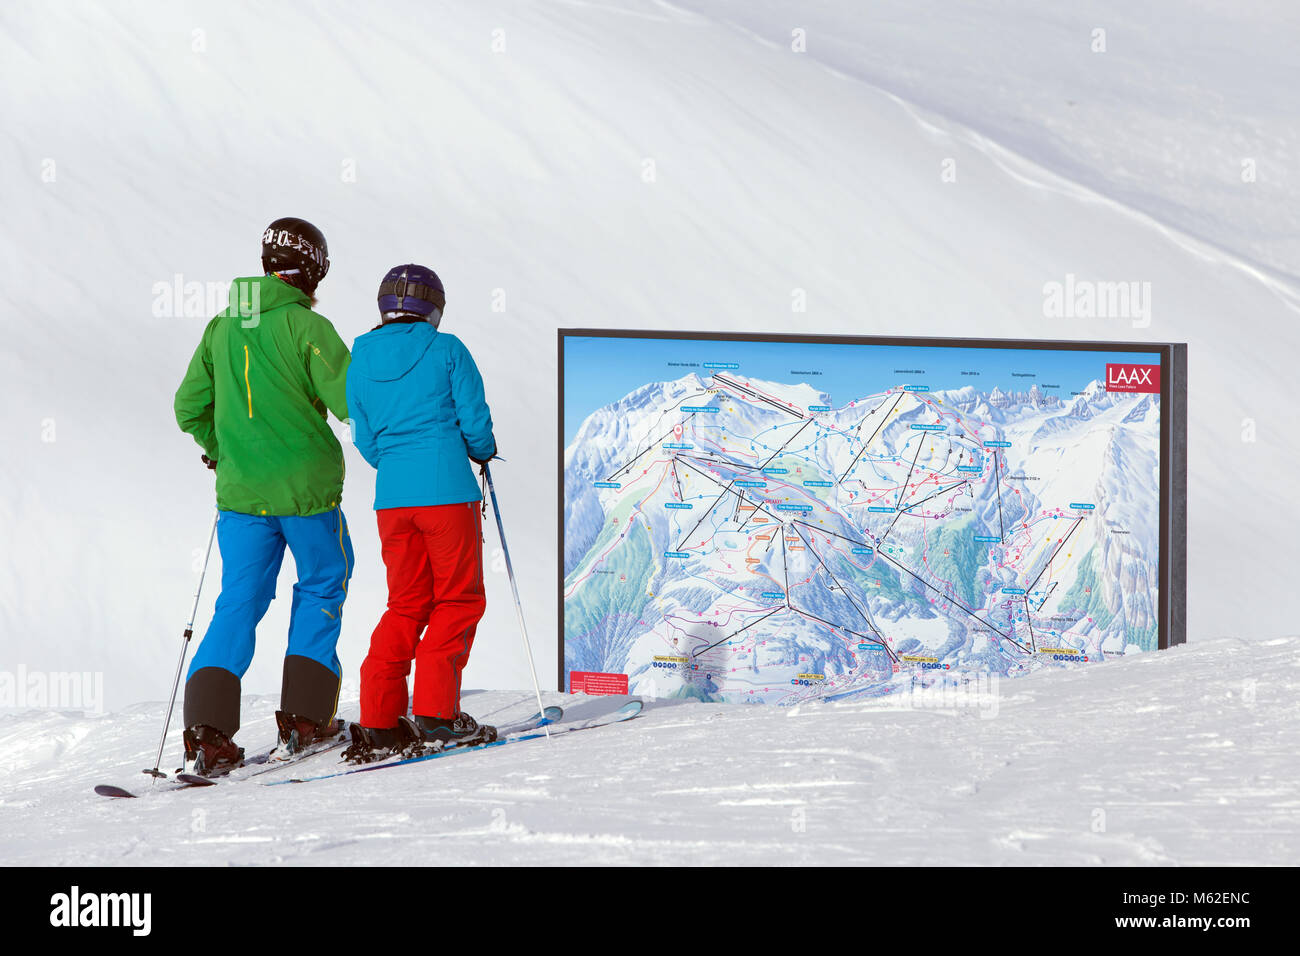 Couple view the ski map at Crap Masegn in Switzerland - Stock Image